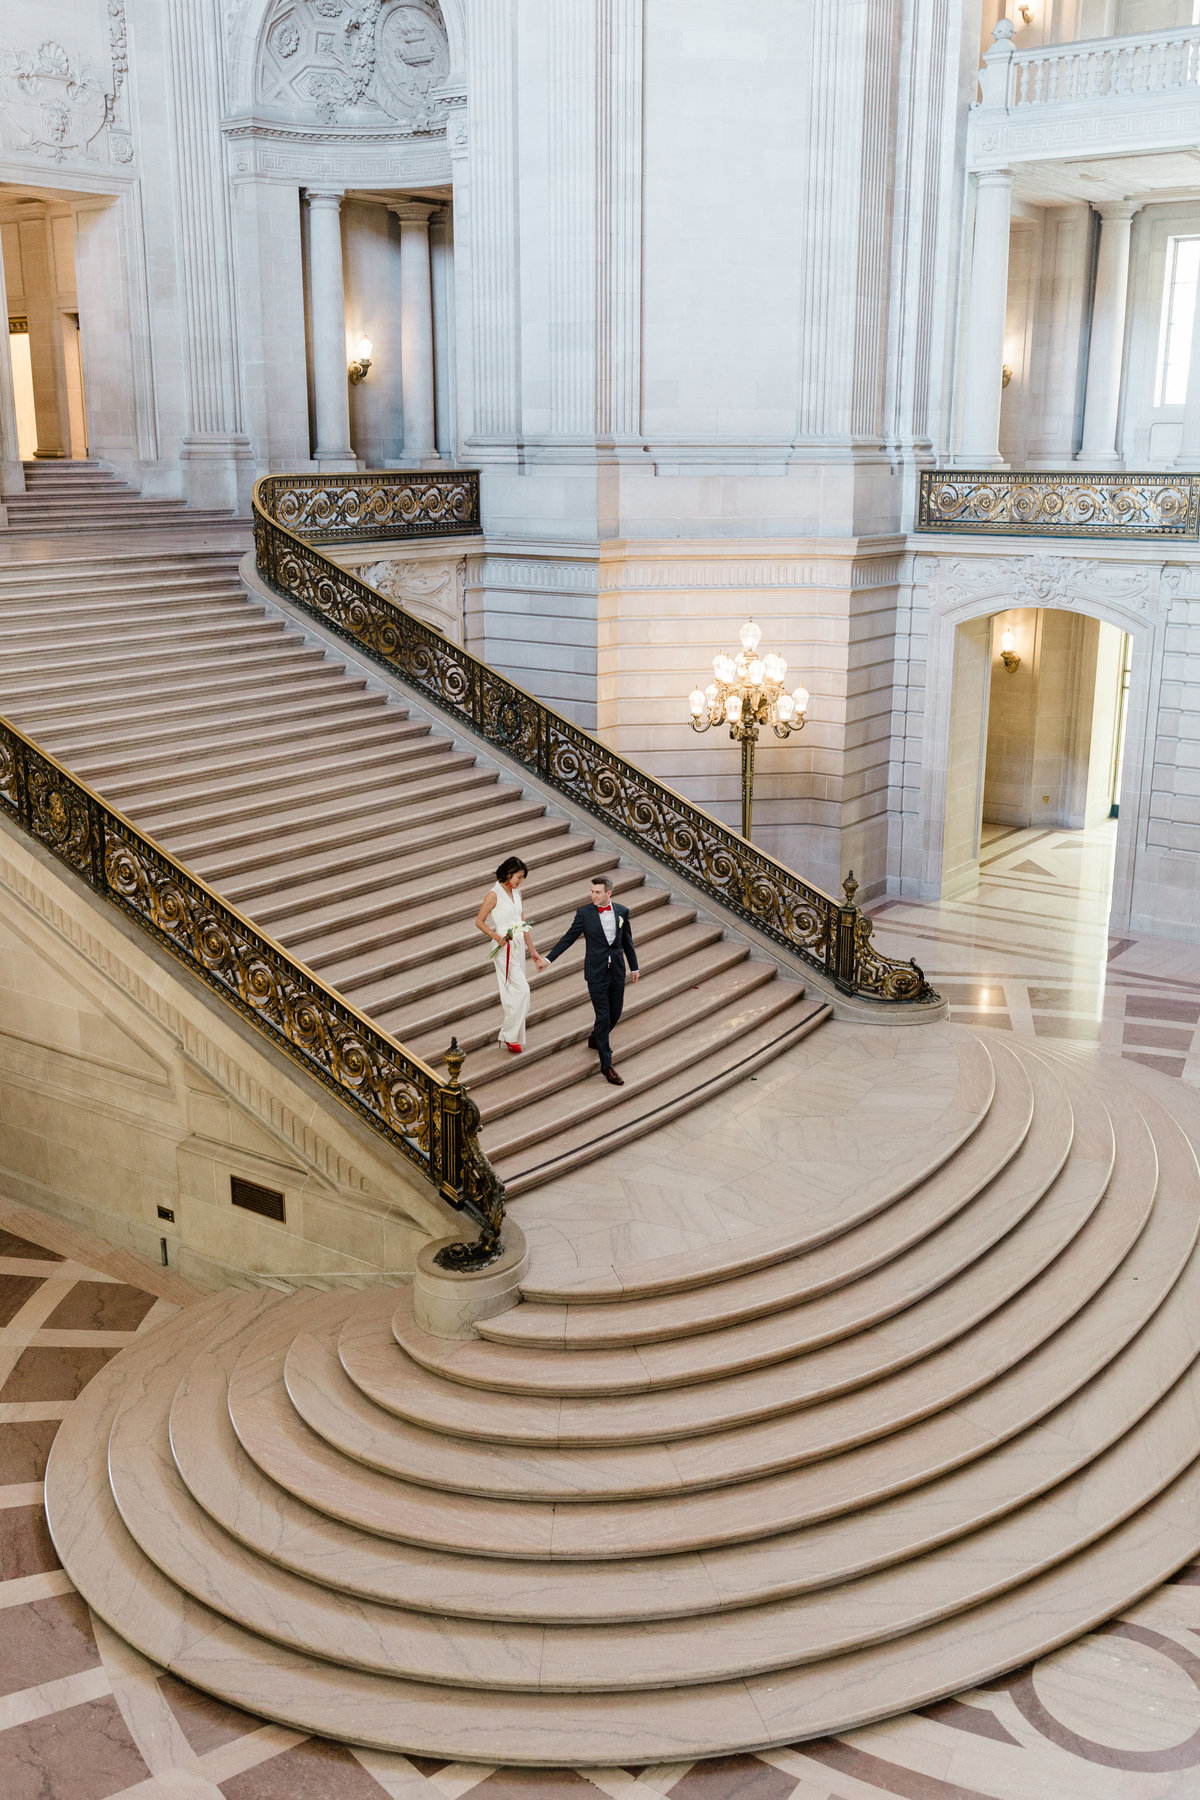 Judy + Greg San Francisco City Hall Wedding - Cassie Valente Photography 0002